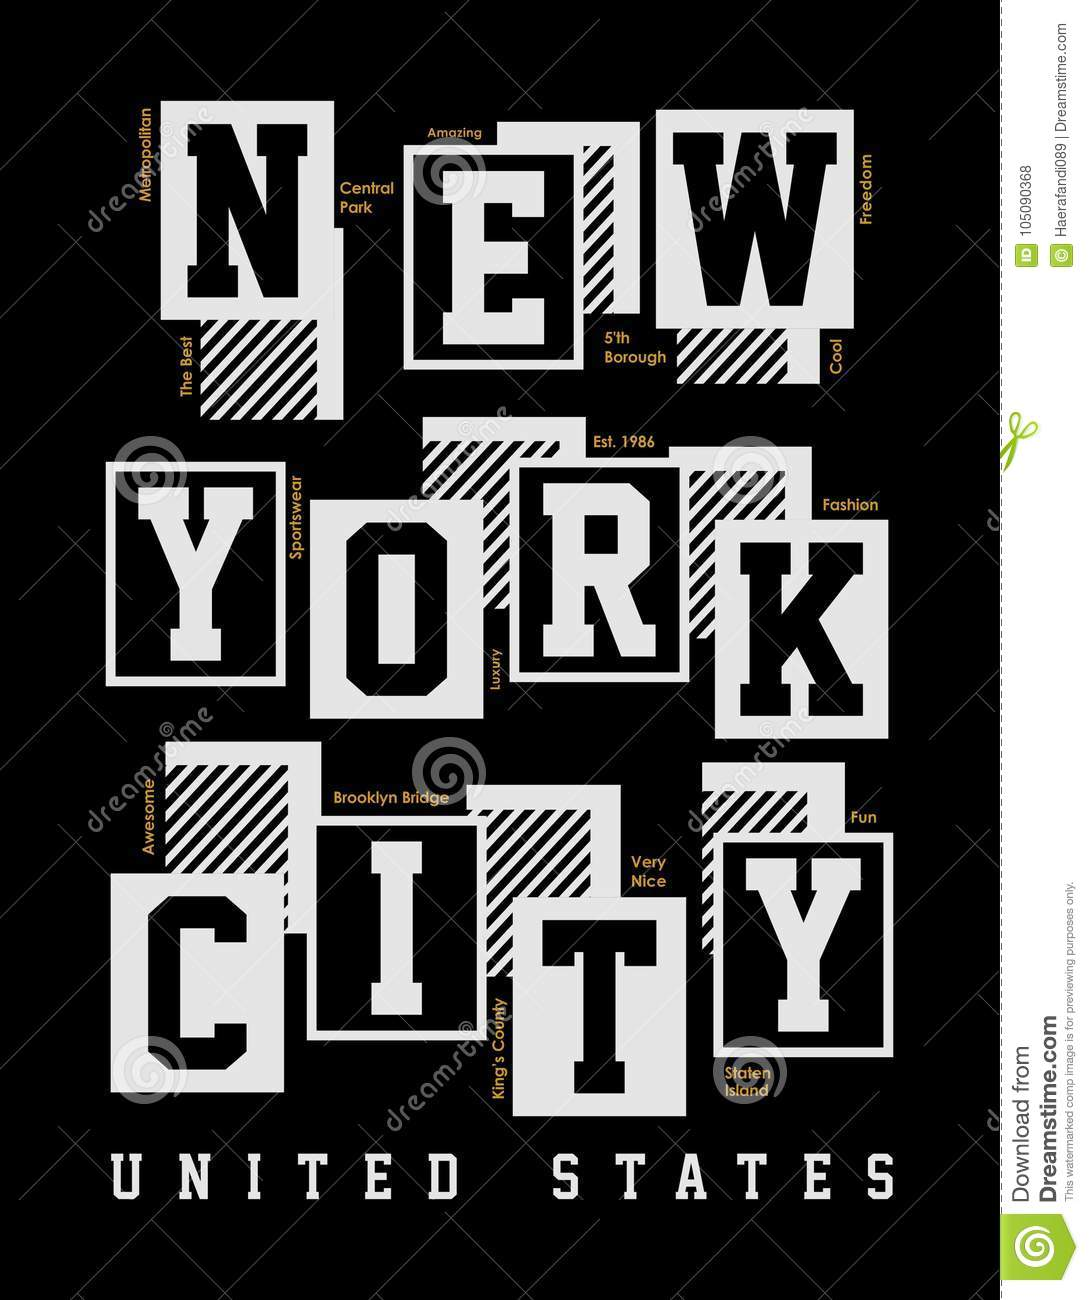 0909c8c4a New York City United States, T-shirt typography print New York urban theme  graphic cool design classic vintage illustration